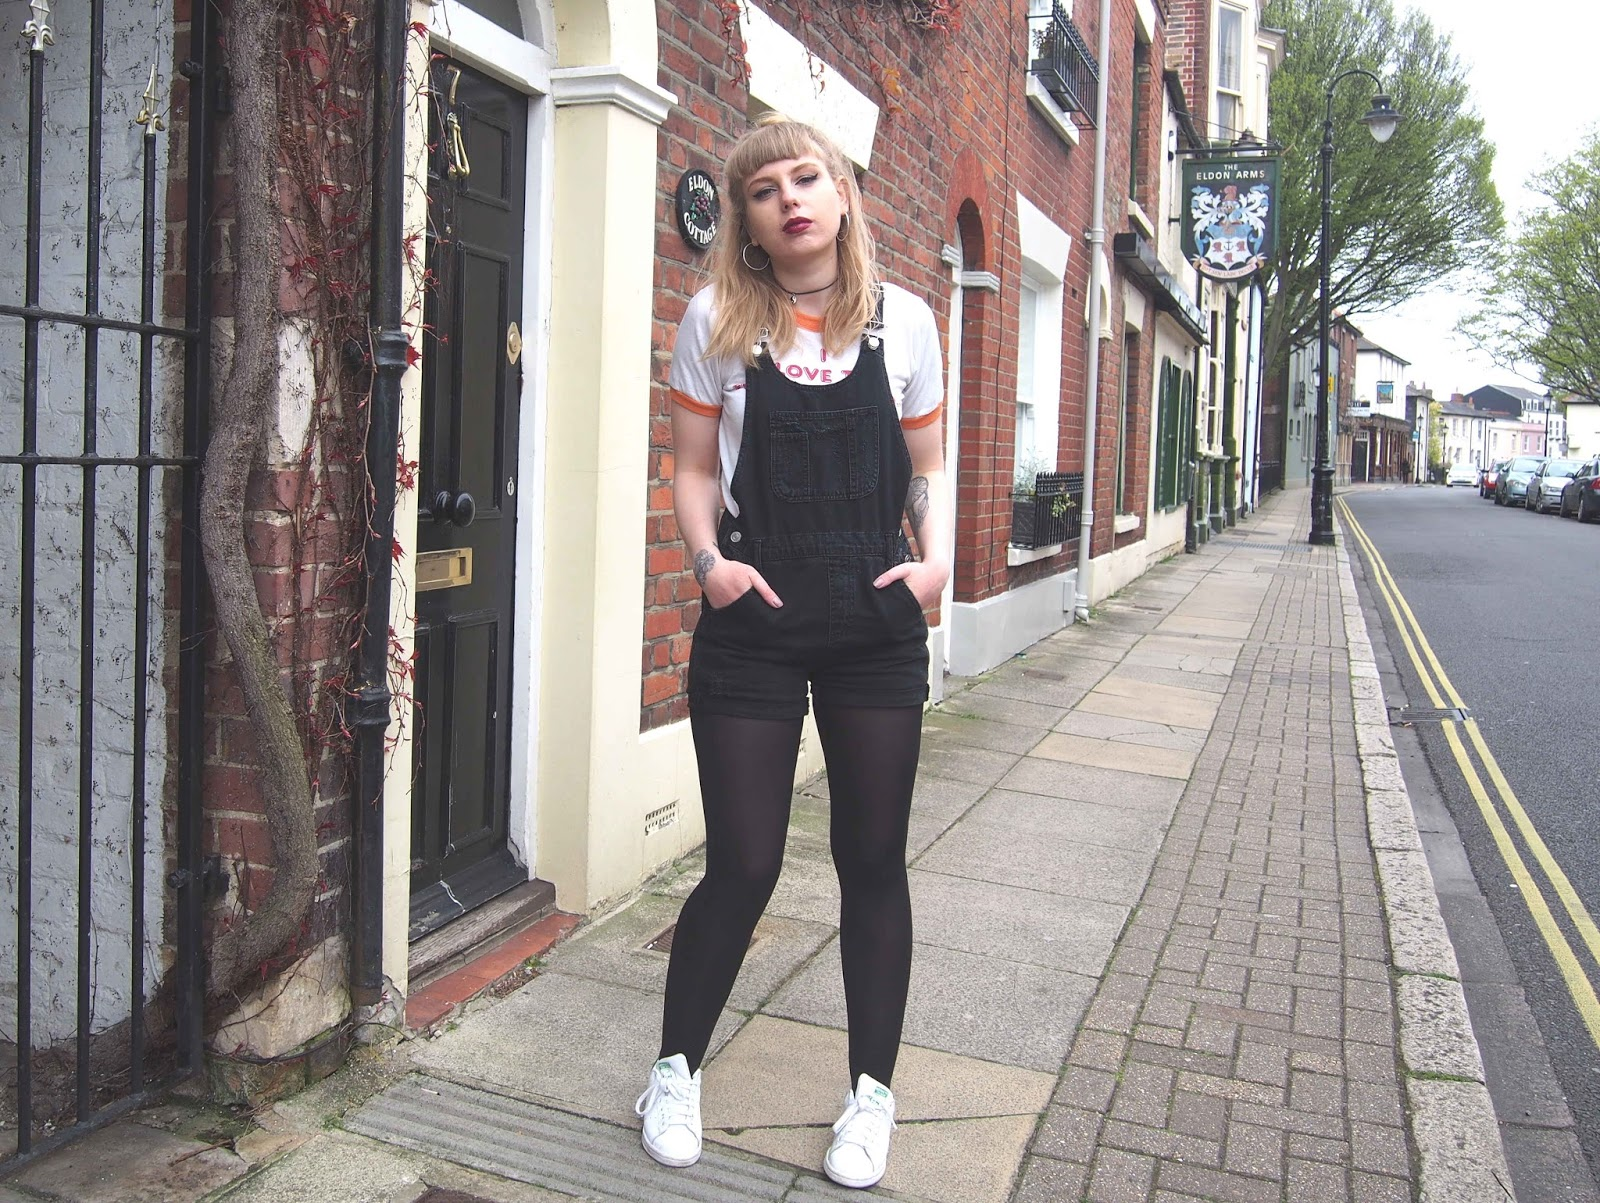 black distressed dungarees, ringer tee, 70s t-shirt, spring summer outfit inspiration, grunge inspired outfit, alternative unique fashion style, choker 4